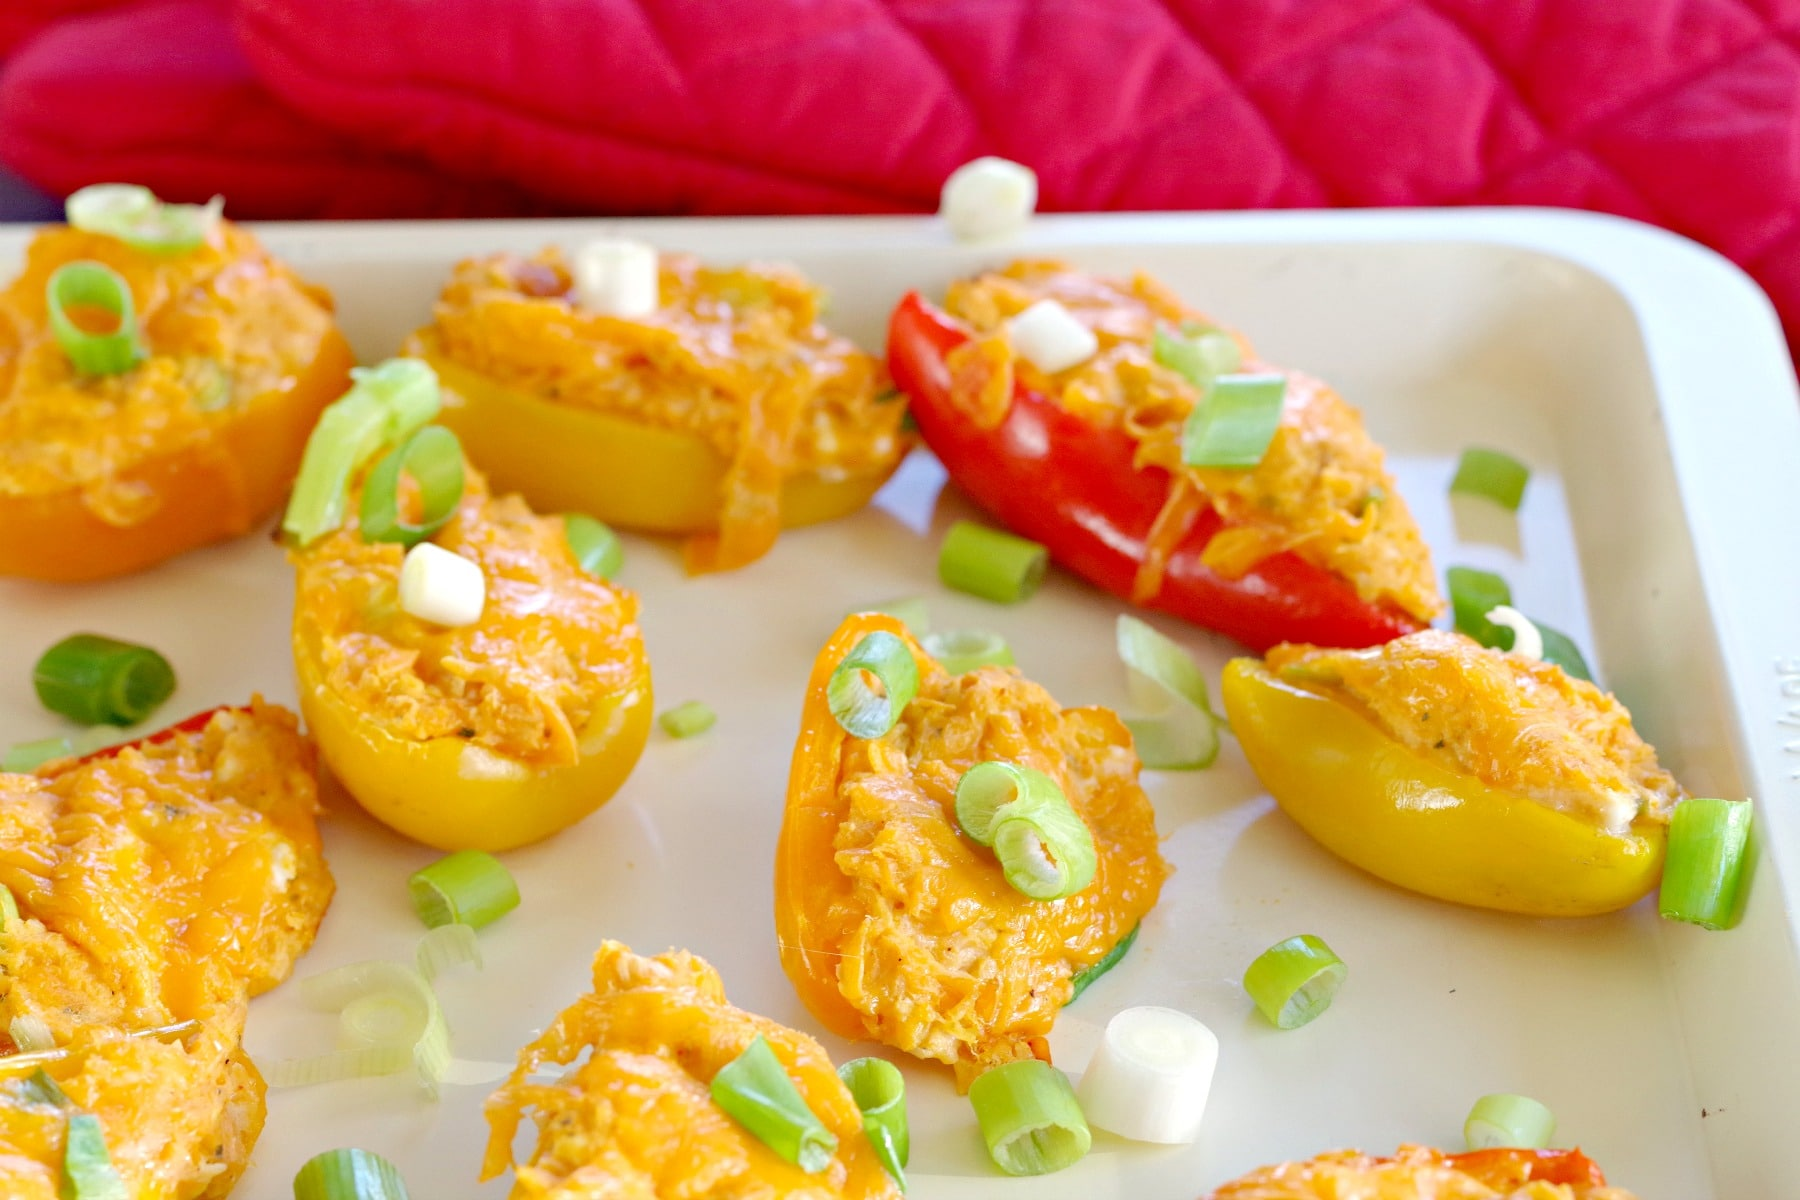 stuffed mini peppers on an off-white baking sheet with red oven mitts in the background